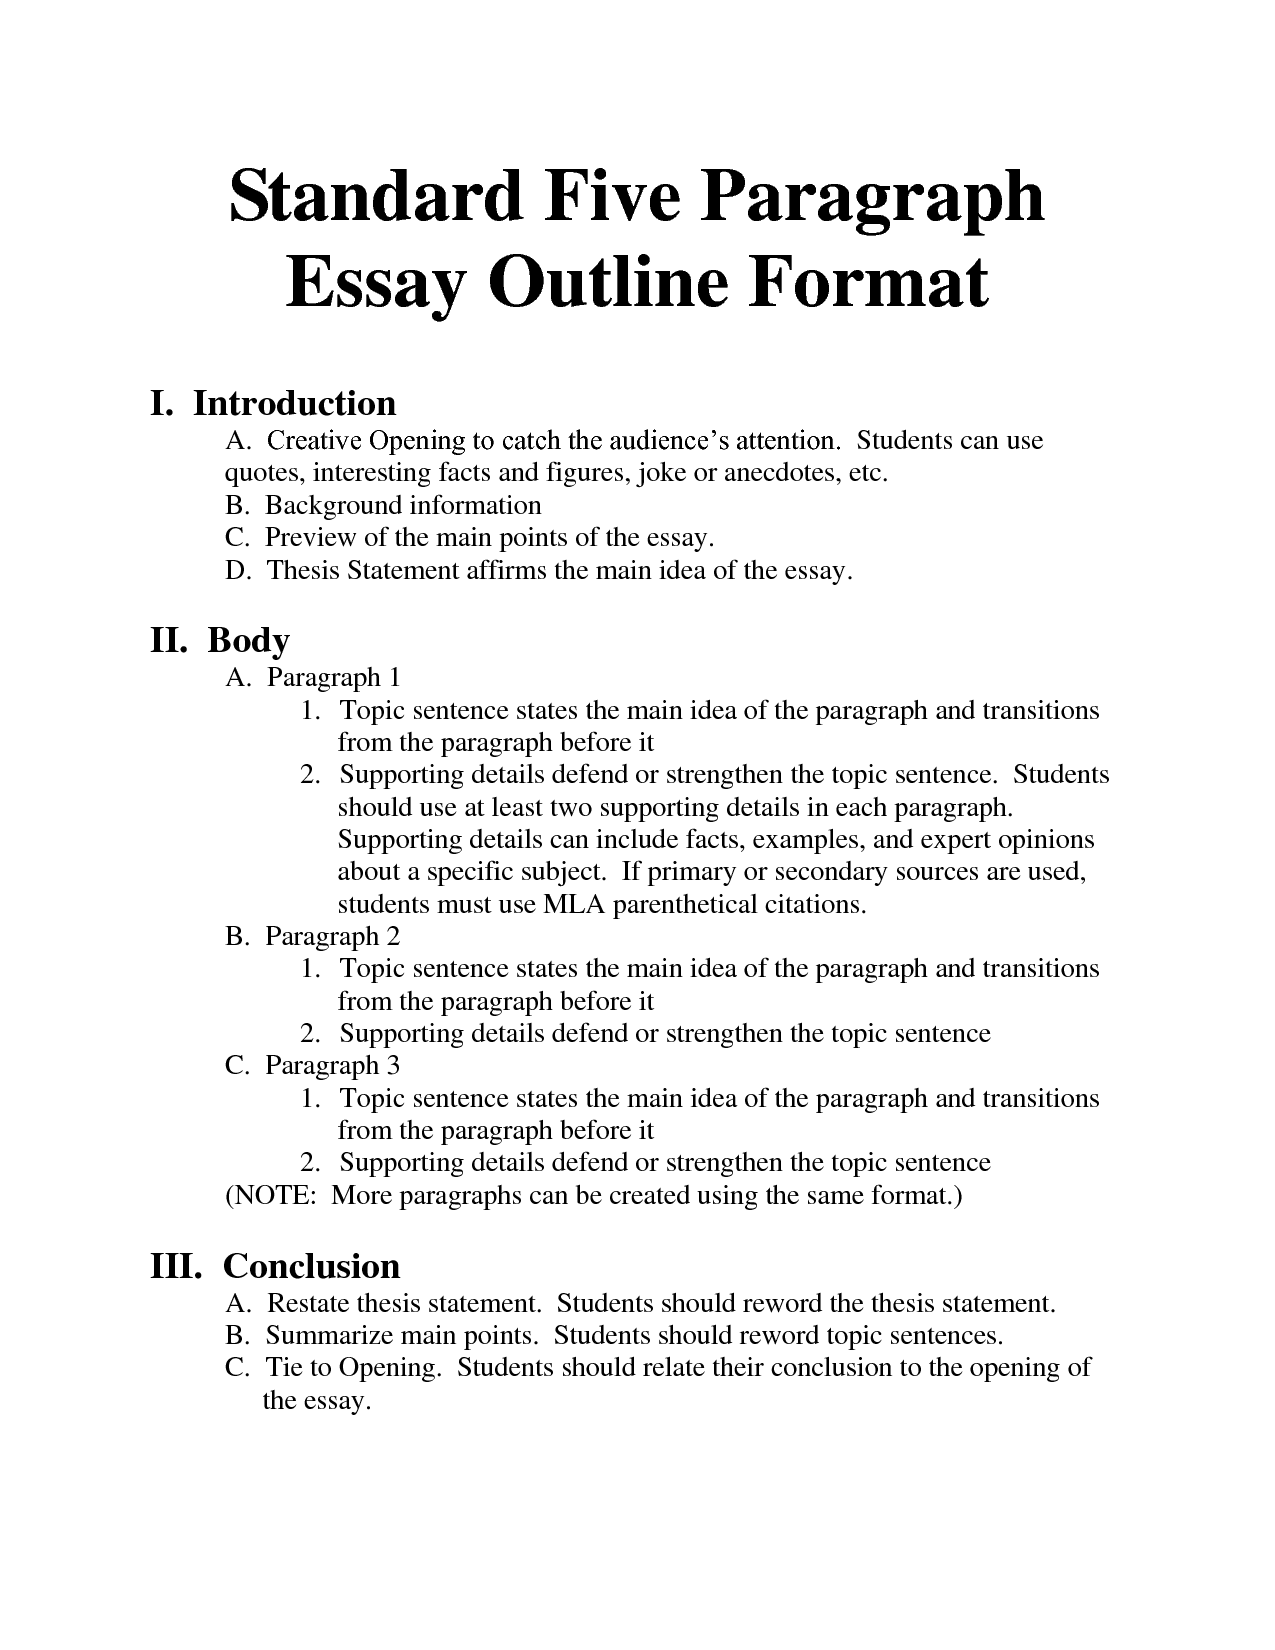 how to write a five paragraph essay outline how to write say you search and help me